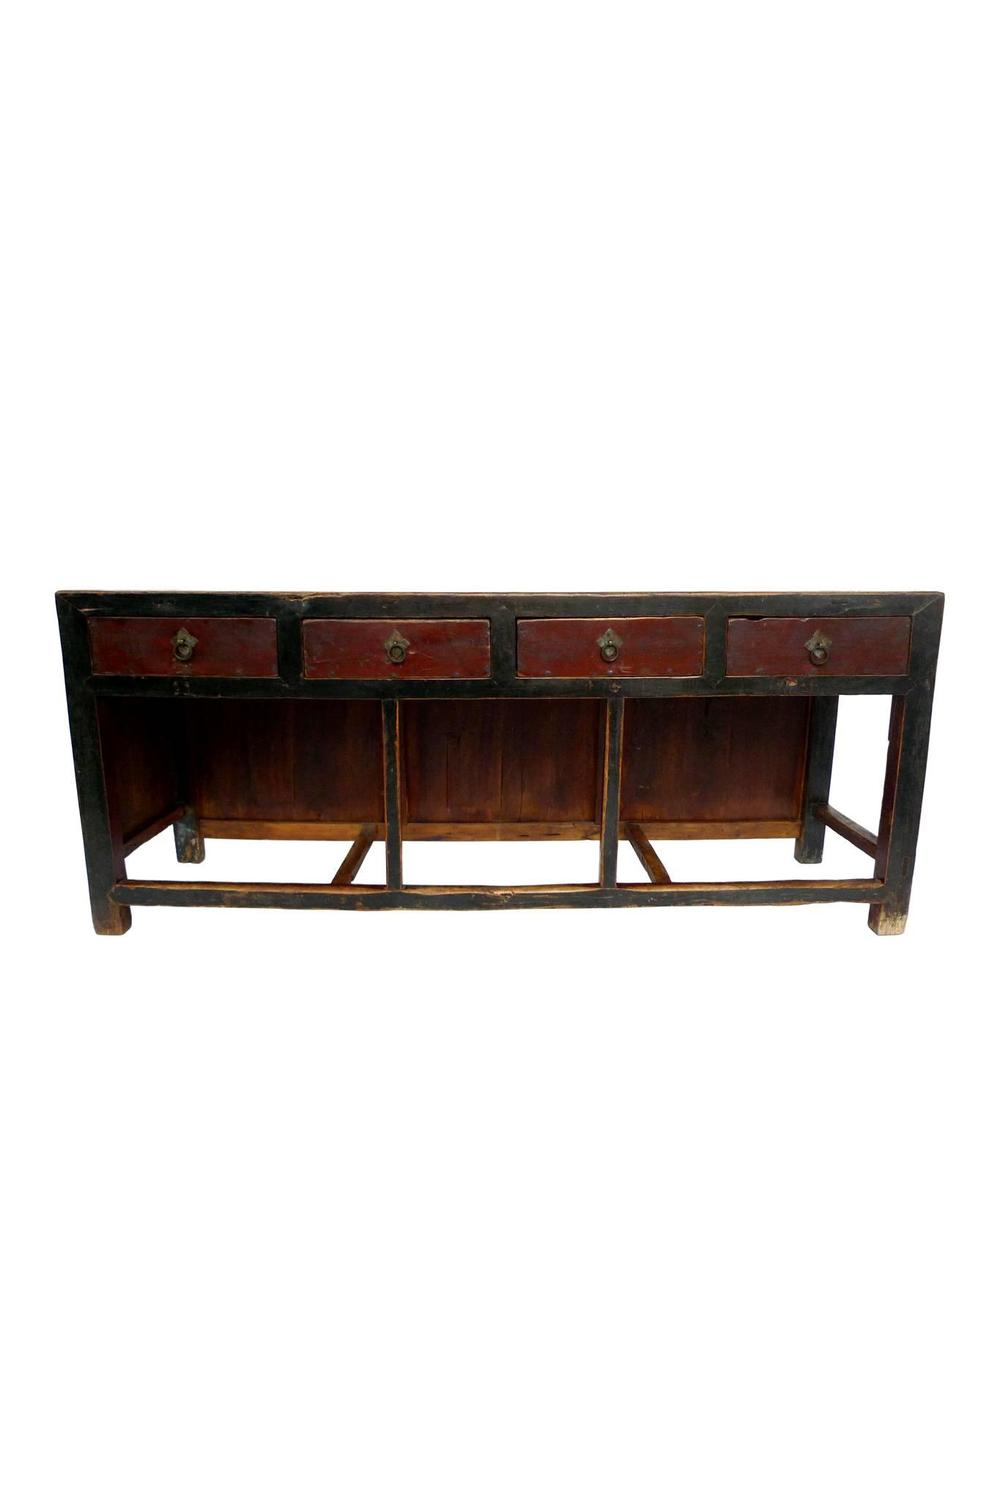 Asian Console Table Elmwood Console Table Asian Console  : 19thCenturyAsianConsoleTable3z from amlibgroup.com size 1000 x 1500 jpeg 39kB